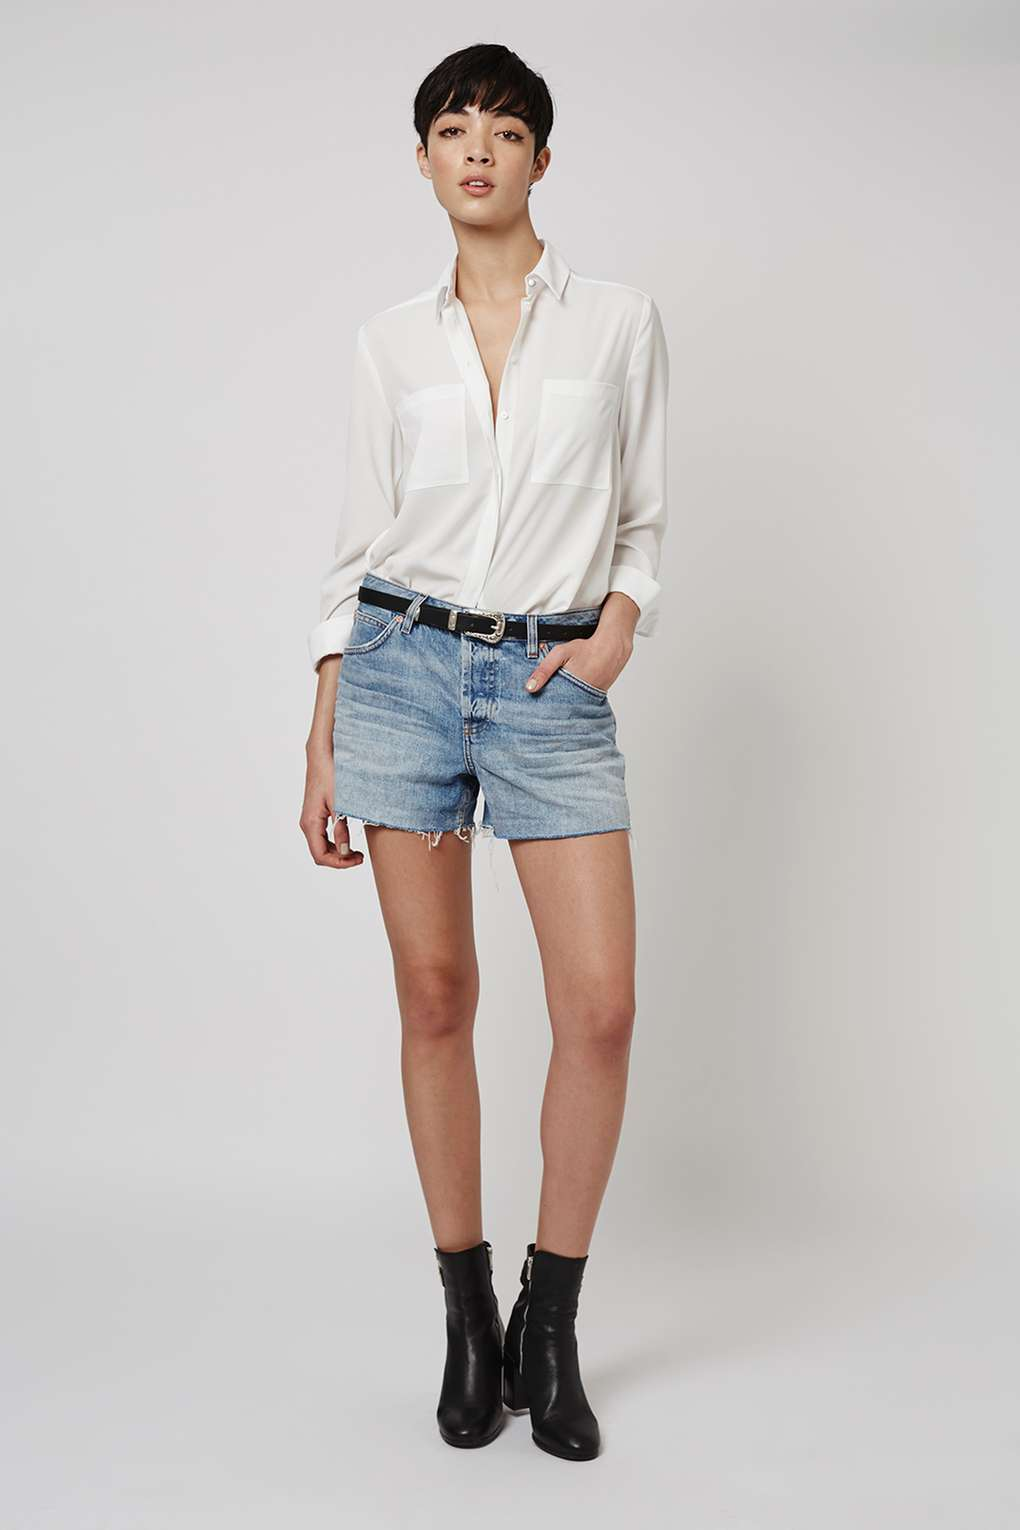 Topshop Ashley Boyfriend Shorts (£28)